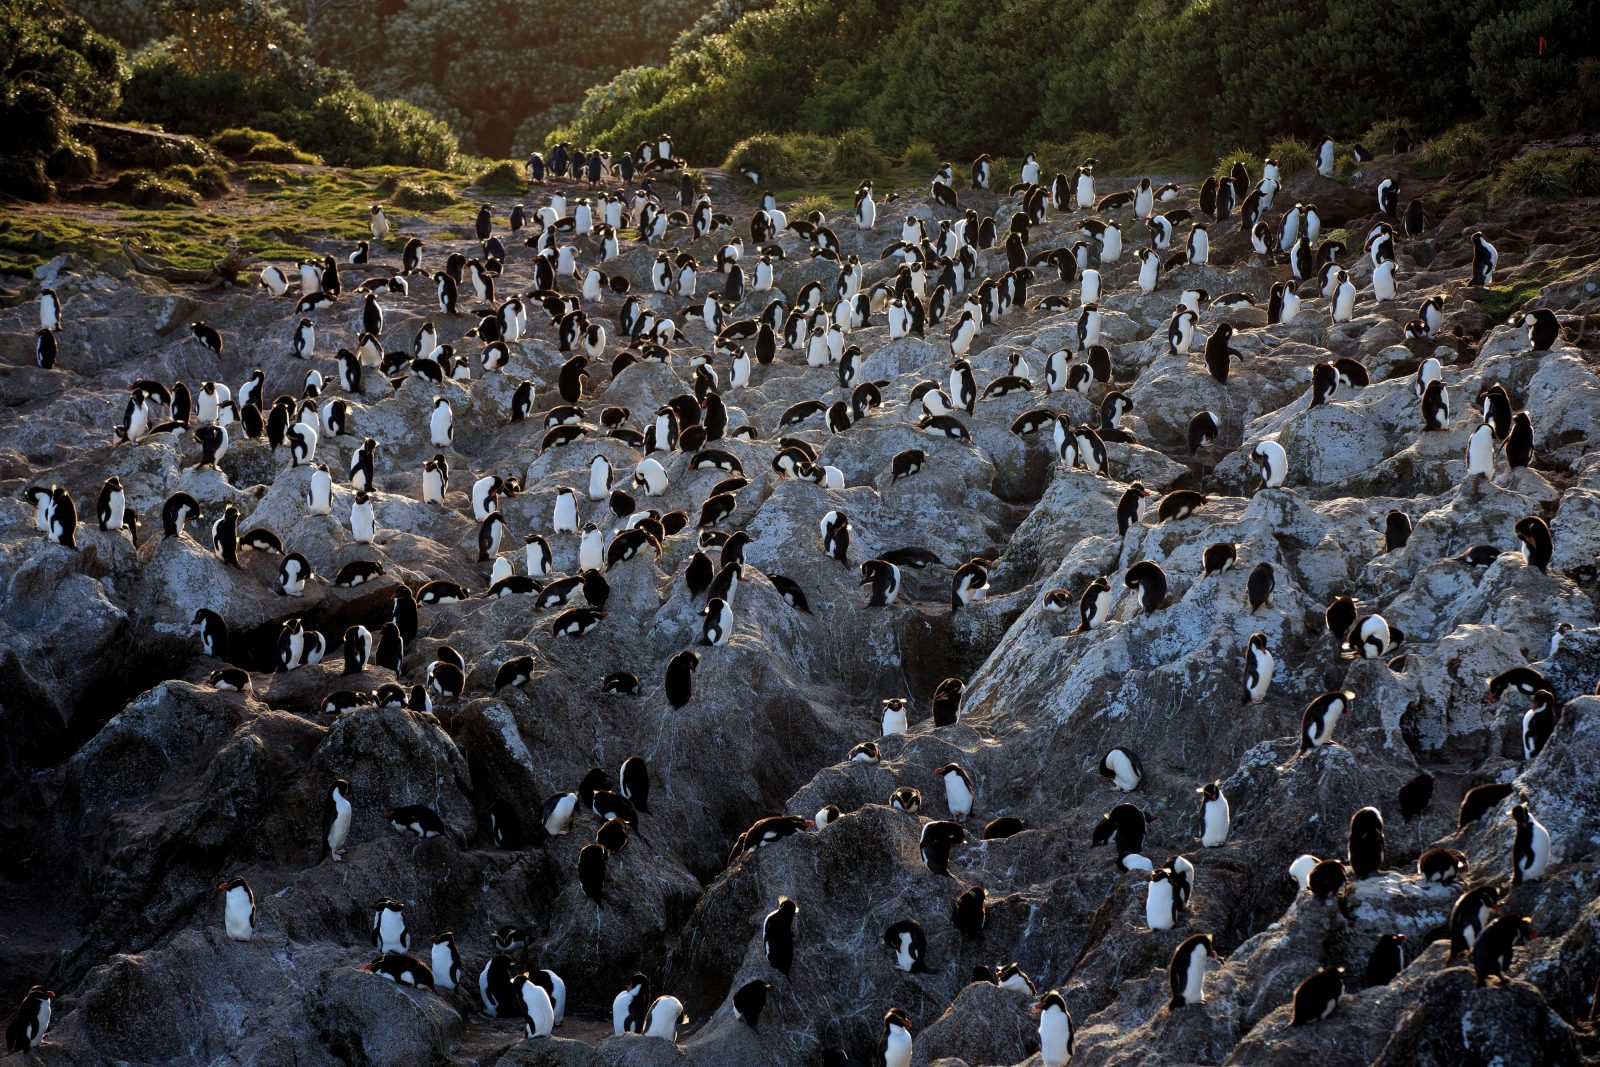 Snares crested penguins clothe exposed granite faces on the island whose name they share. These birds are so closely related to Fiordland crested penguins (tawaki) it has been suggested they should be considered the same species. However, marked differences in their breeding cycles—the Snares birds begin nesting six weeks later than tawaki—make interbreeding highly unlikely. The two birds also have very different nesting behaviours, with tawaki seeking private forest hideaways while Snares crested penguins form crowded colonies.